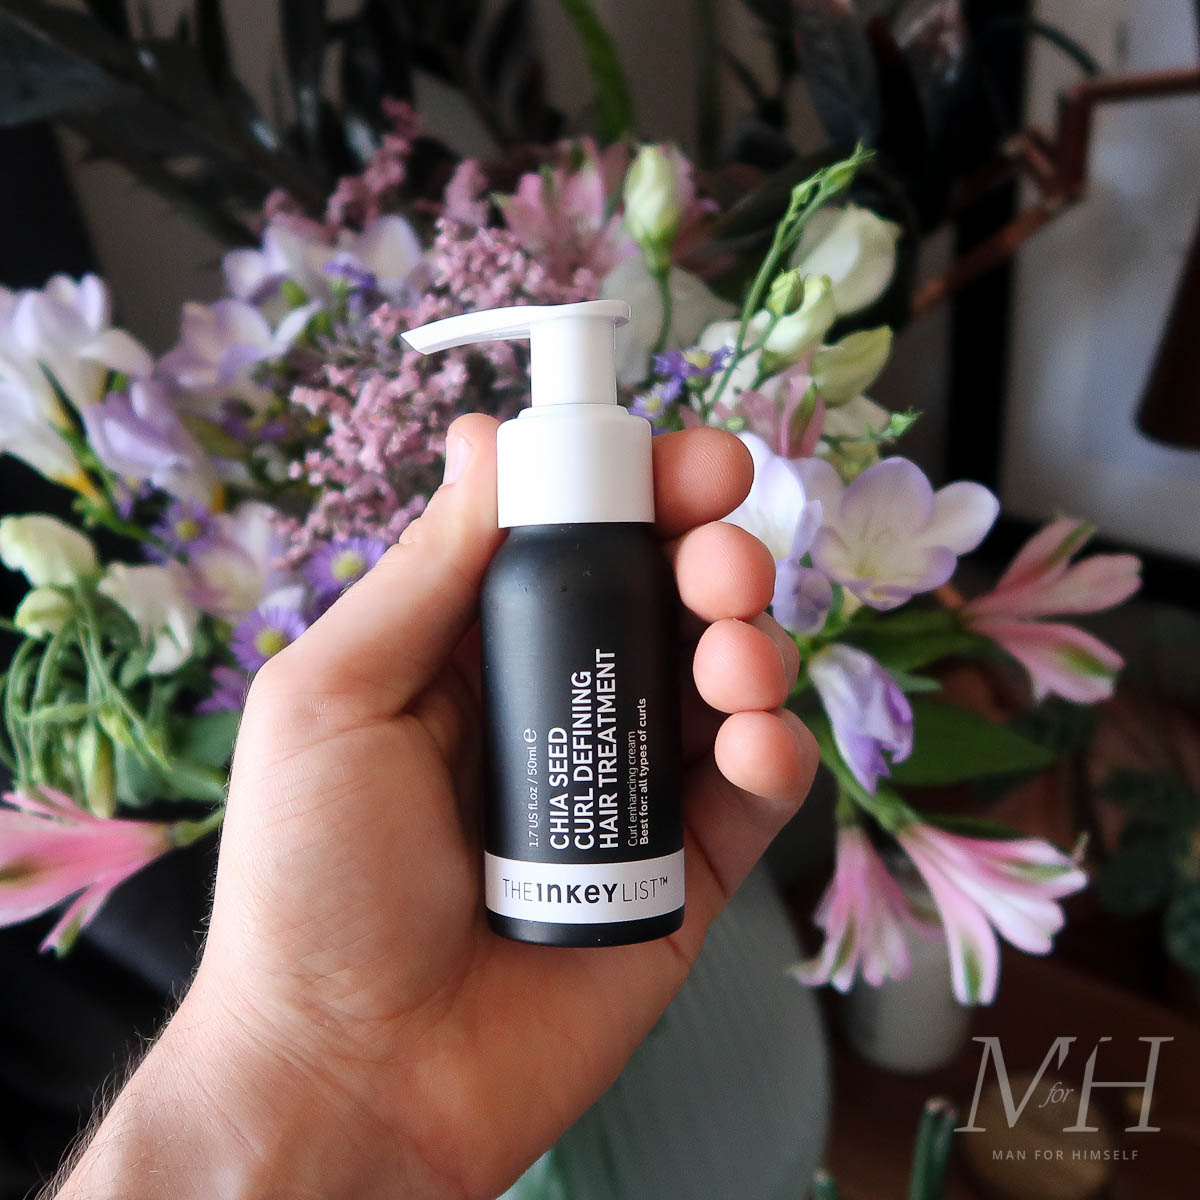 the-inkey-list-chia-seed-curl-defining-hair-treatment-product-review-man-for-himself